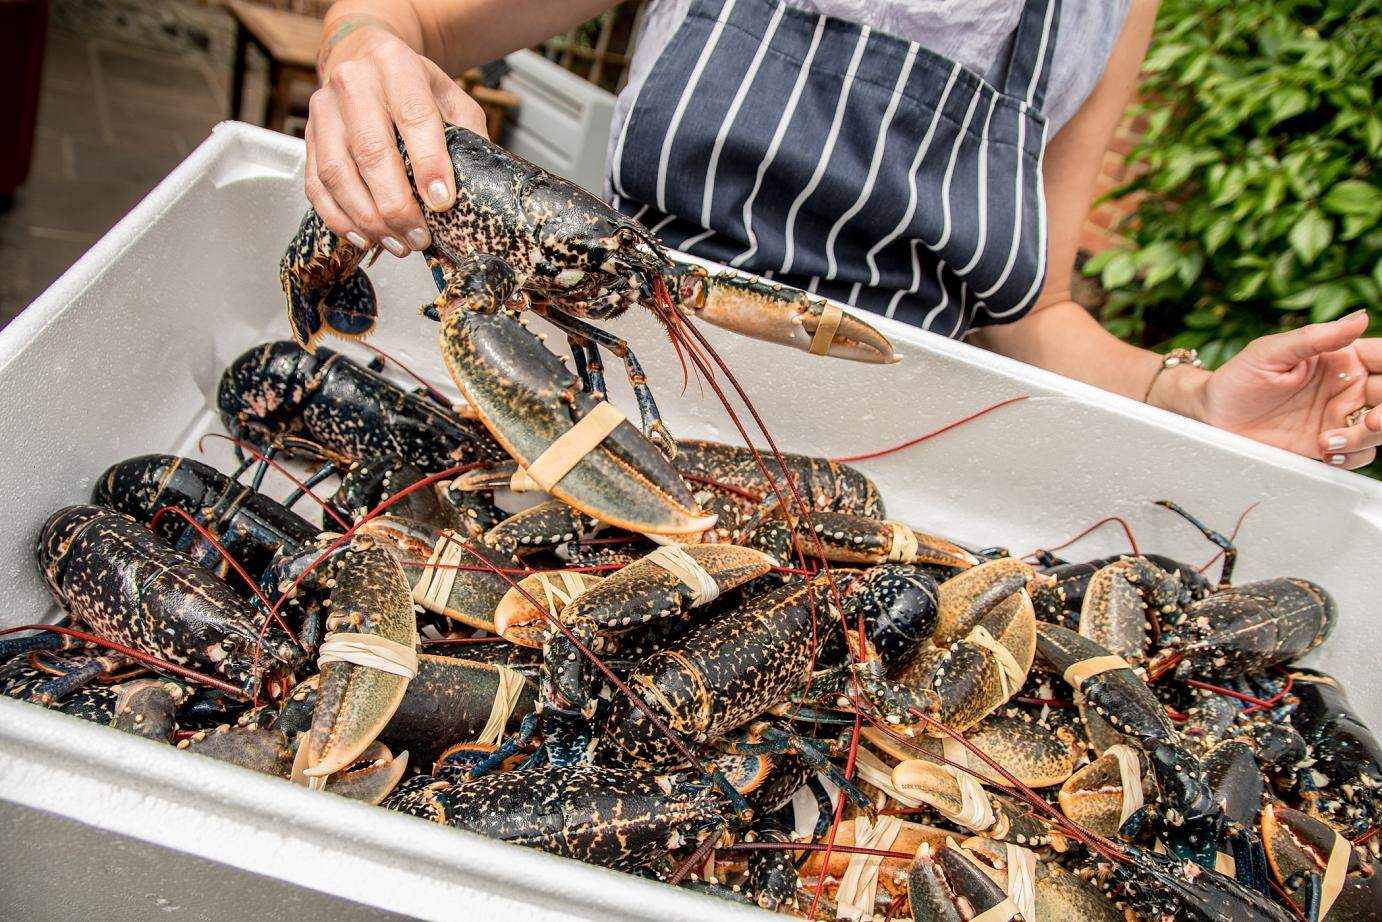 Lobster night - Every Friday